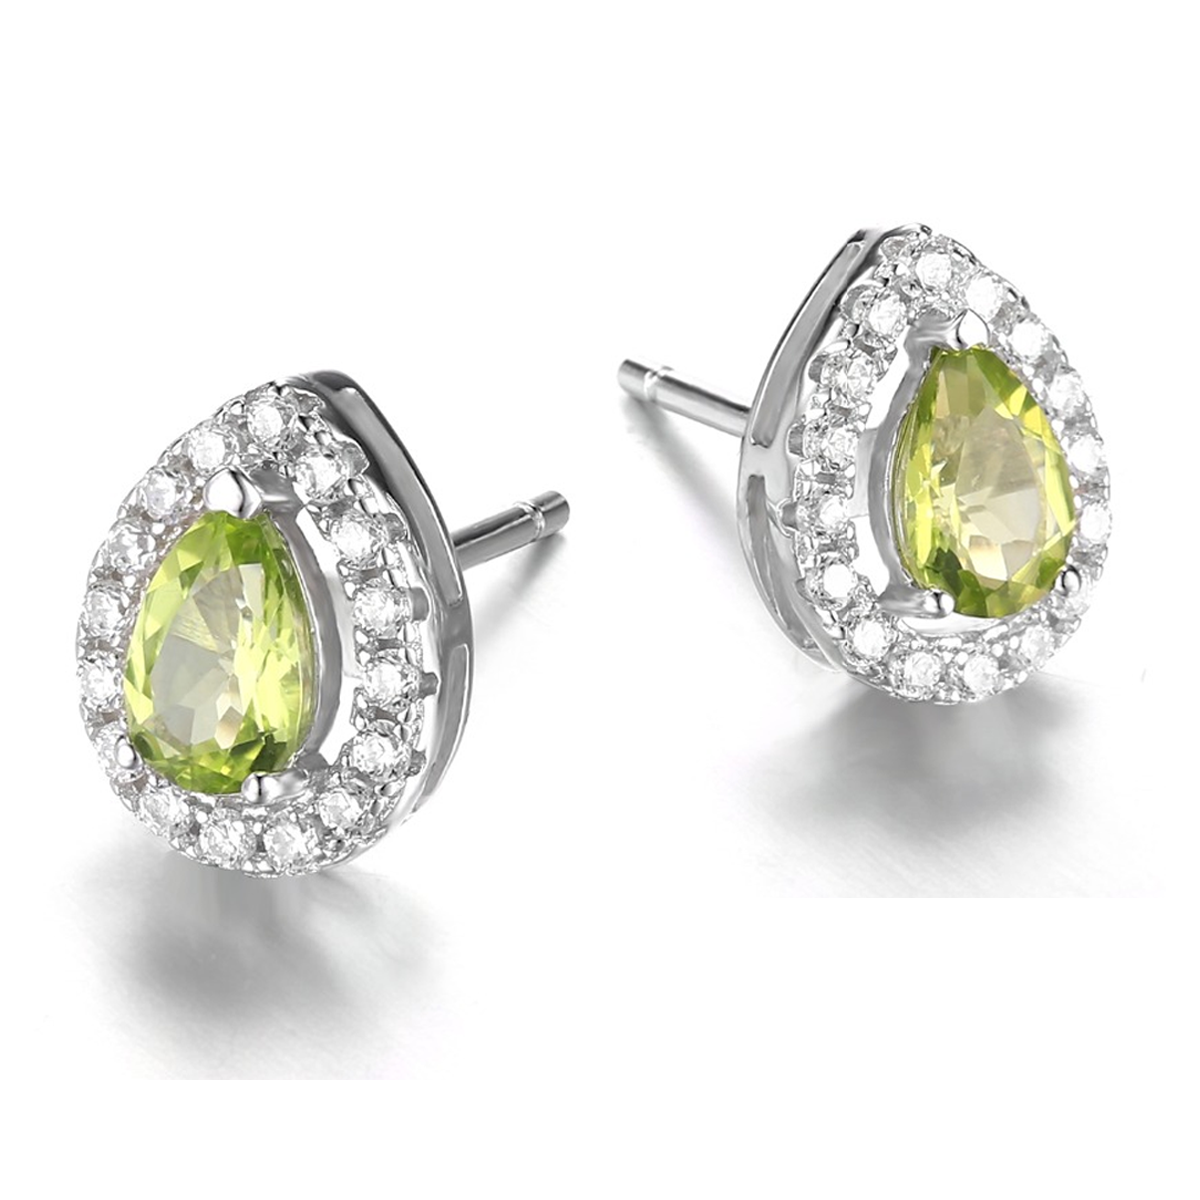 stone price gilgit peridot earrings for women bazaar pakistan in buy bazar